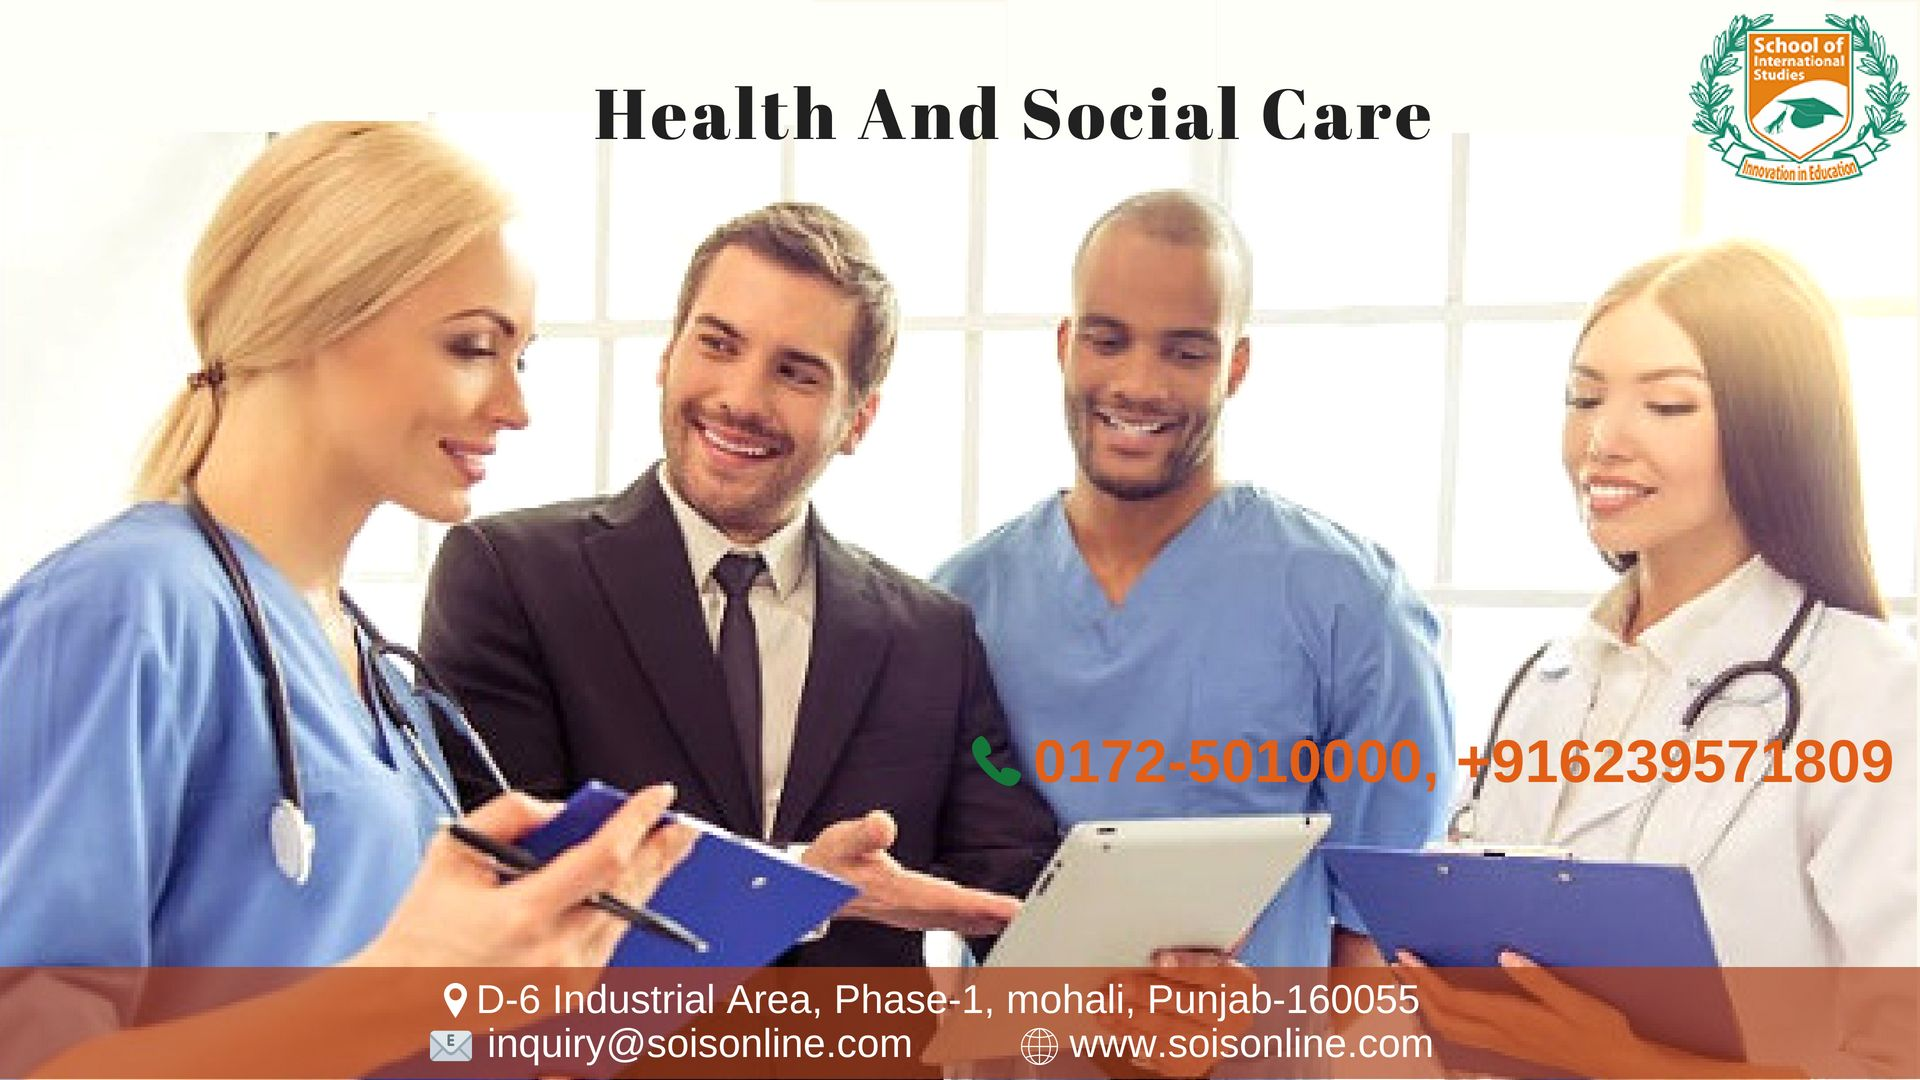 Diploma in Management for Health and Social Care is a 120